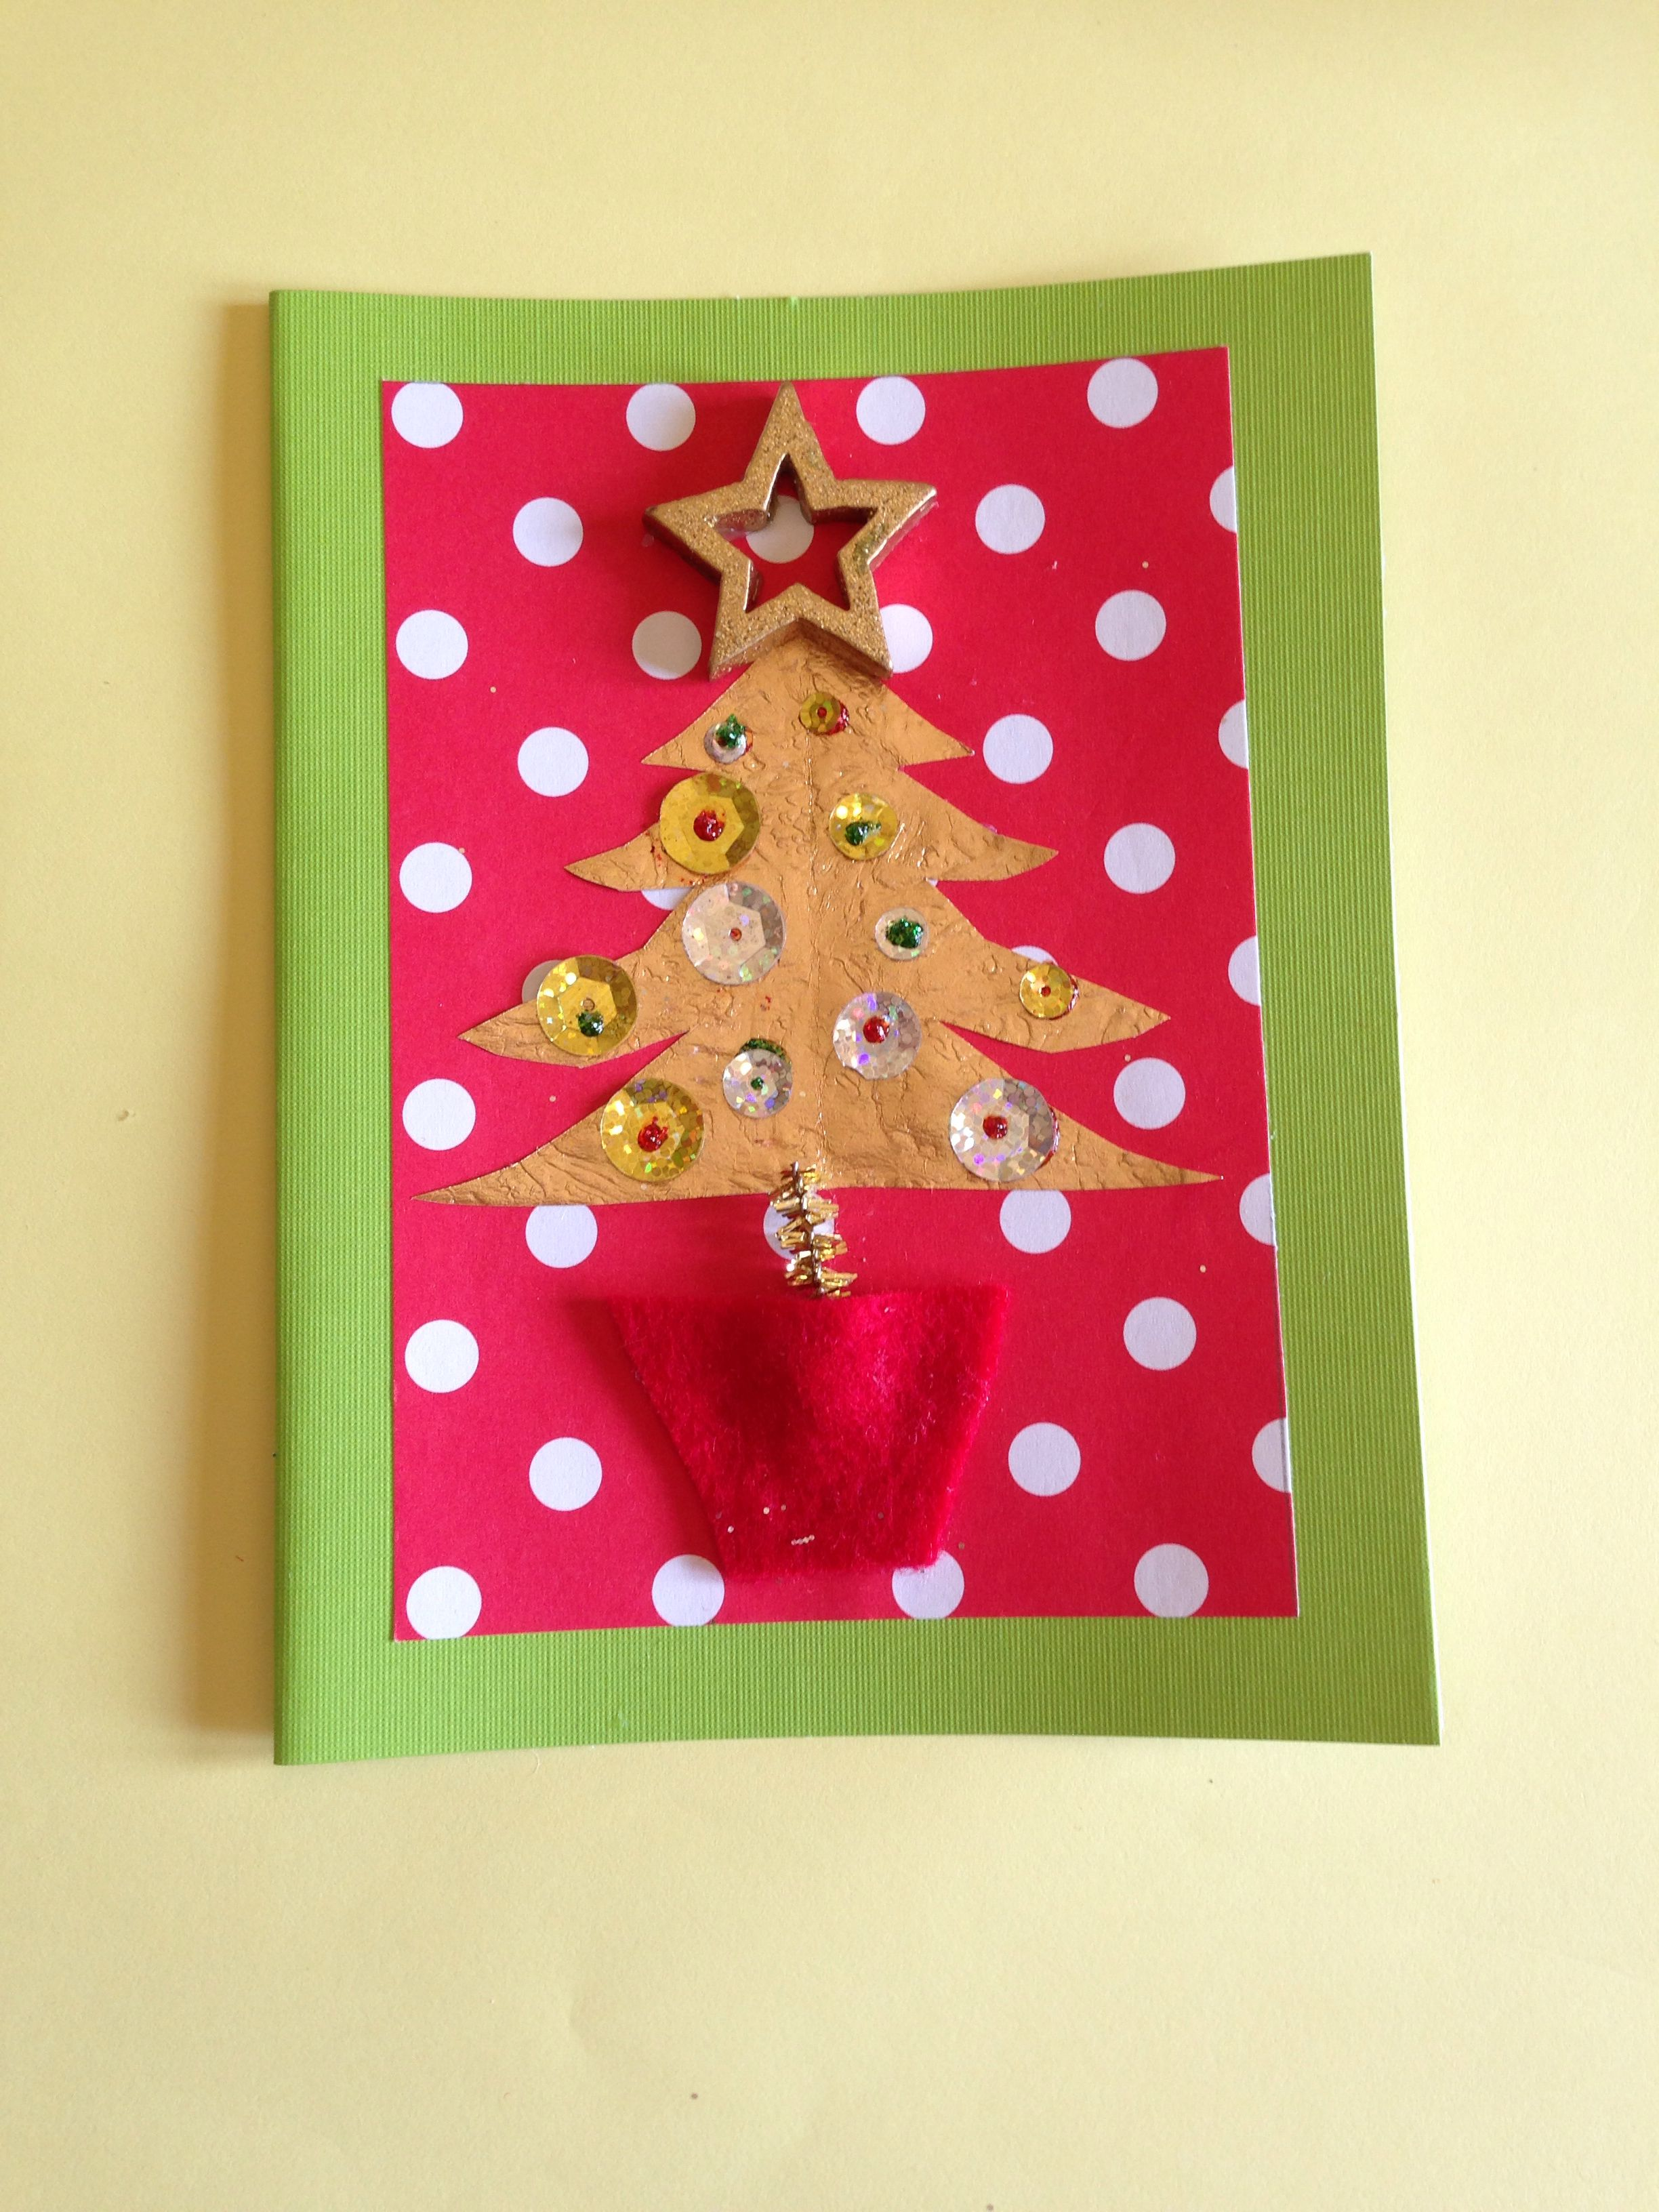 8 year old brother made this #christmas #cards #craft #green #red ...